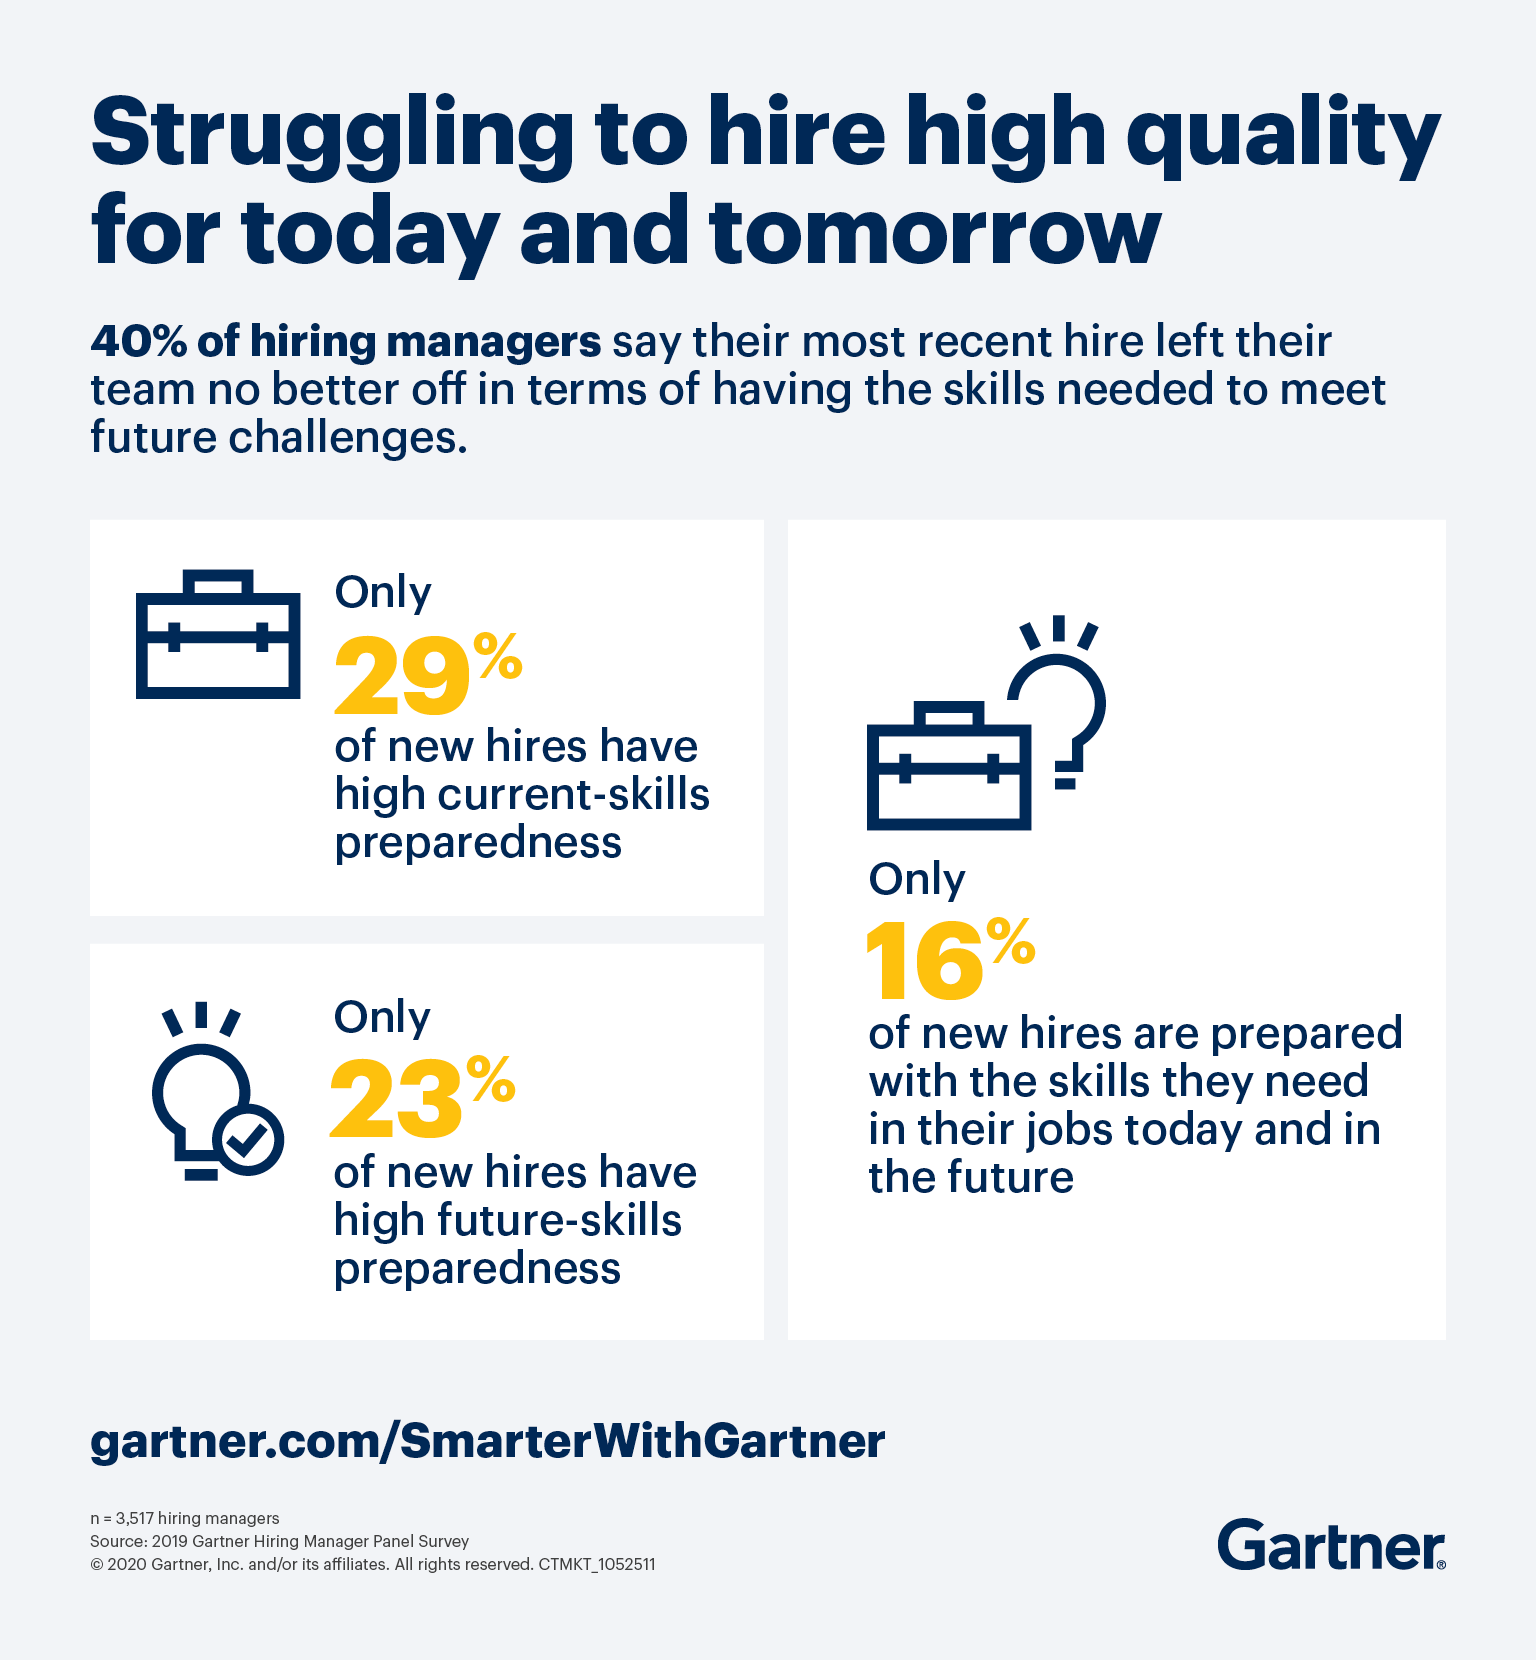 Gartner research shows only 16% of new hires are prepared with the skills they need in their jobs today and in the future.